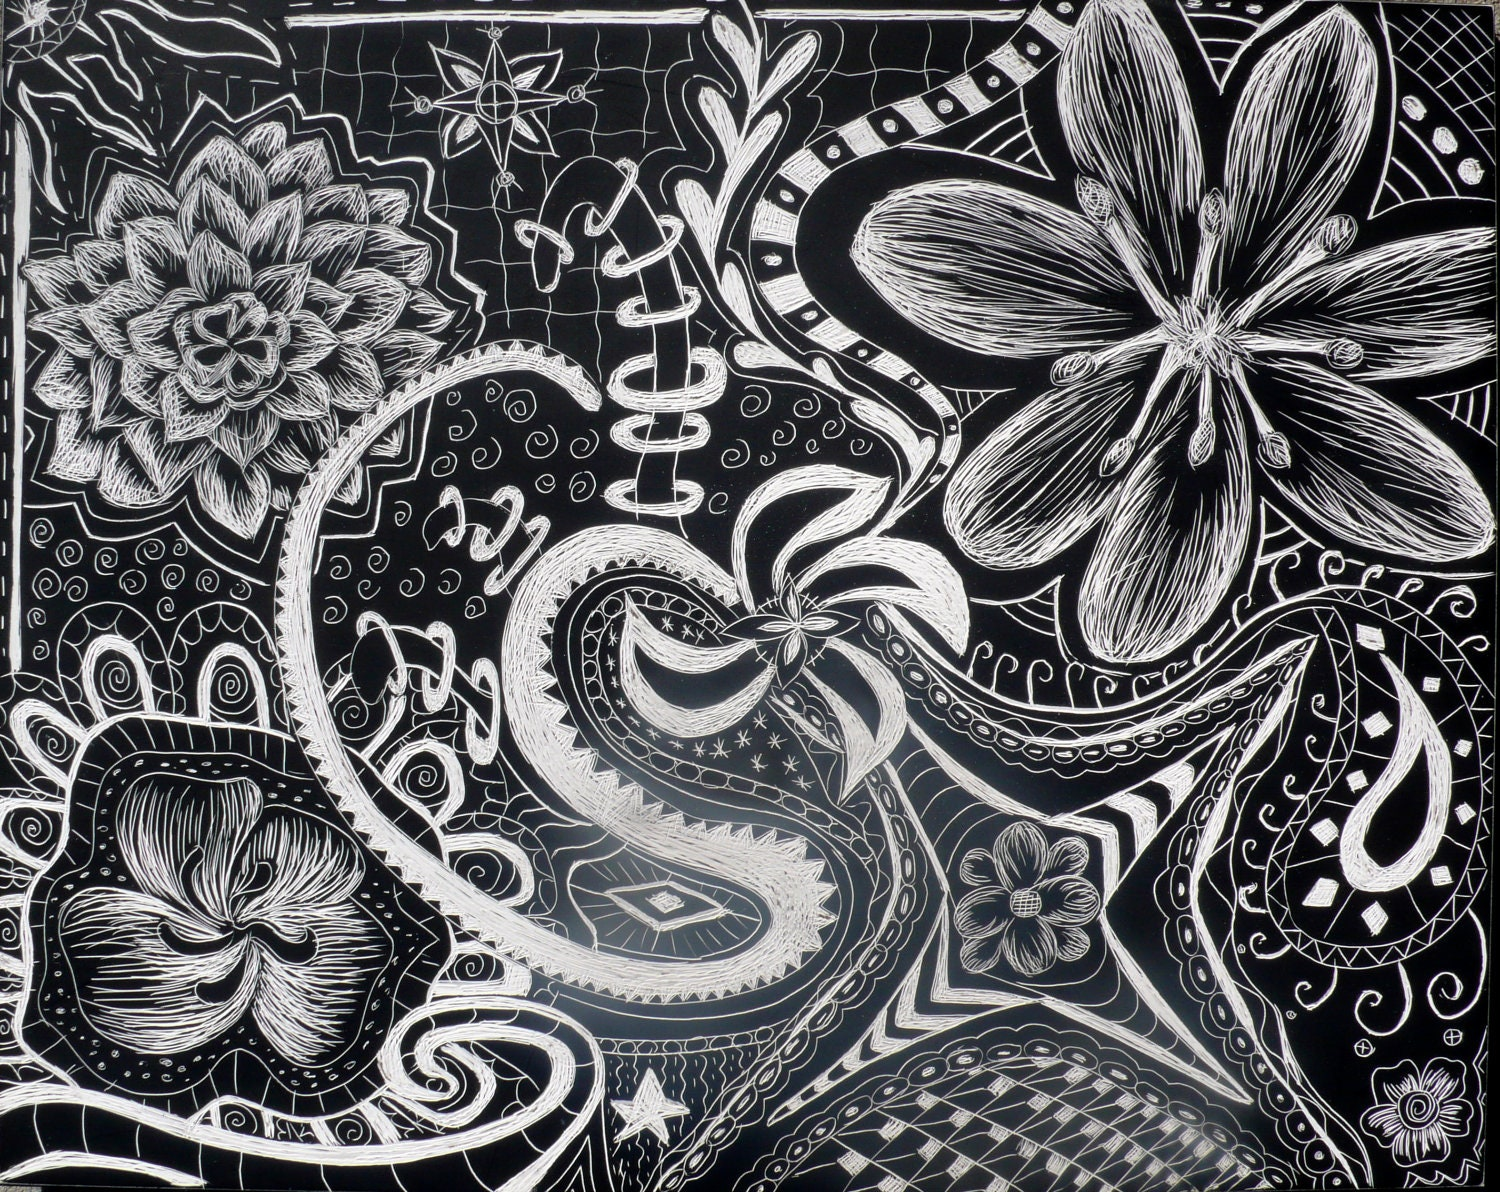 Items similar to Flower Abstract Zentangle Doodle on Scratchboard on Etsy